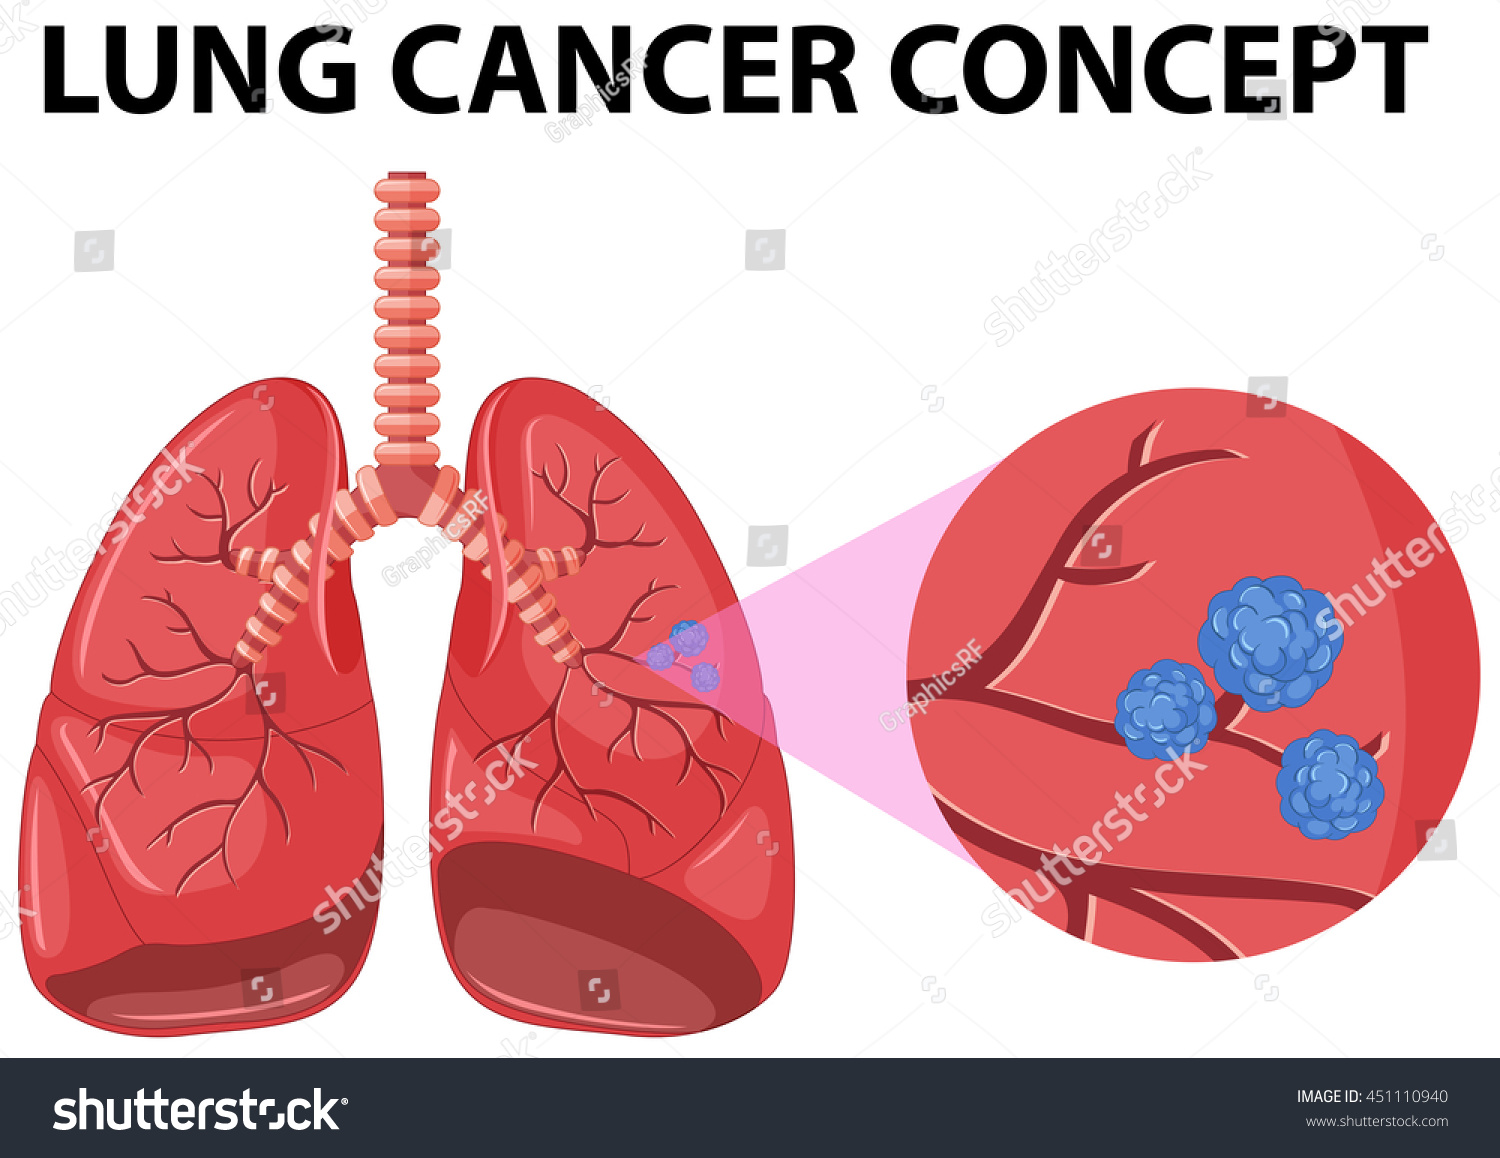 Diagram lung cancer concept illustration stock vector 451110940 diagram of lung cancer concept illustration pooptronica Image collections